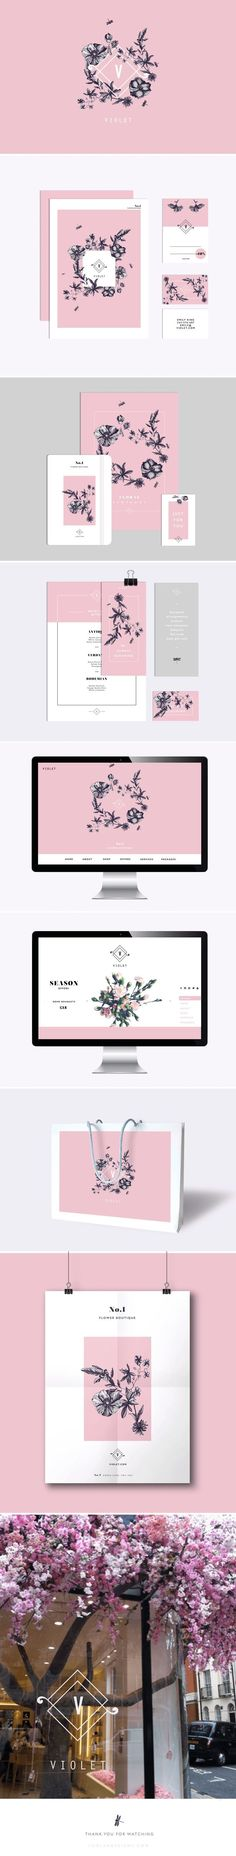 Branding and logo design / hand drawn boho flowers + pink + grey // http://loolaadesigns.com: http://loolaadesigns.comviolet-branding/?utm_content=bufferd9ea2&utm_medium=social&utm_source=pinterest.com&utm_campaign=buffer